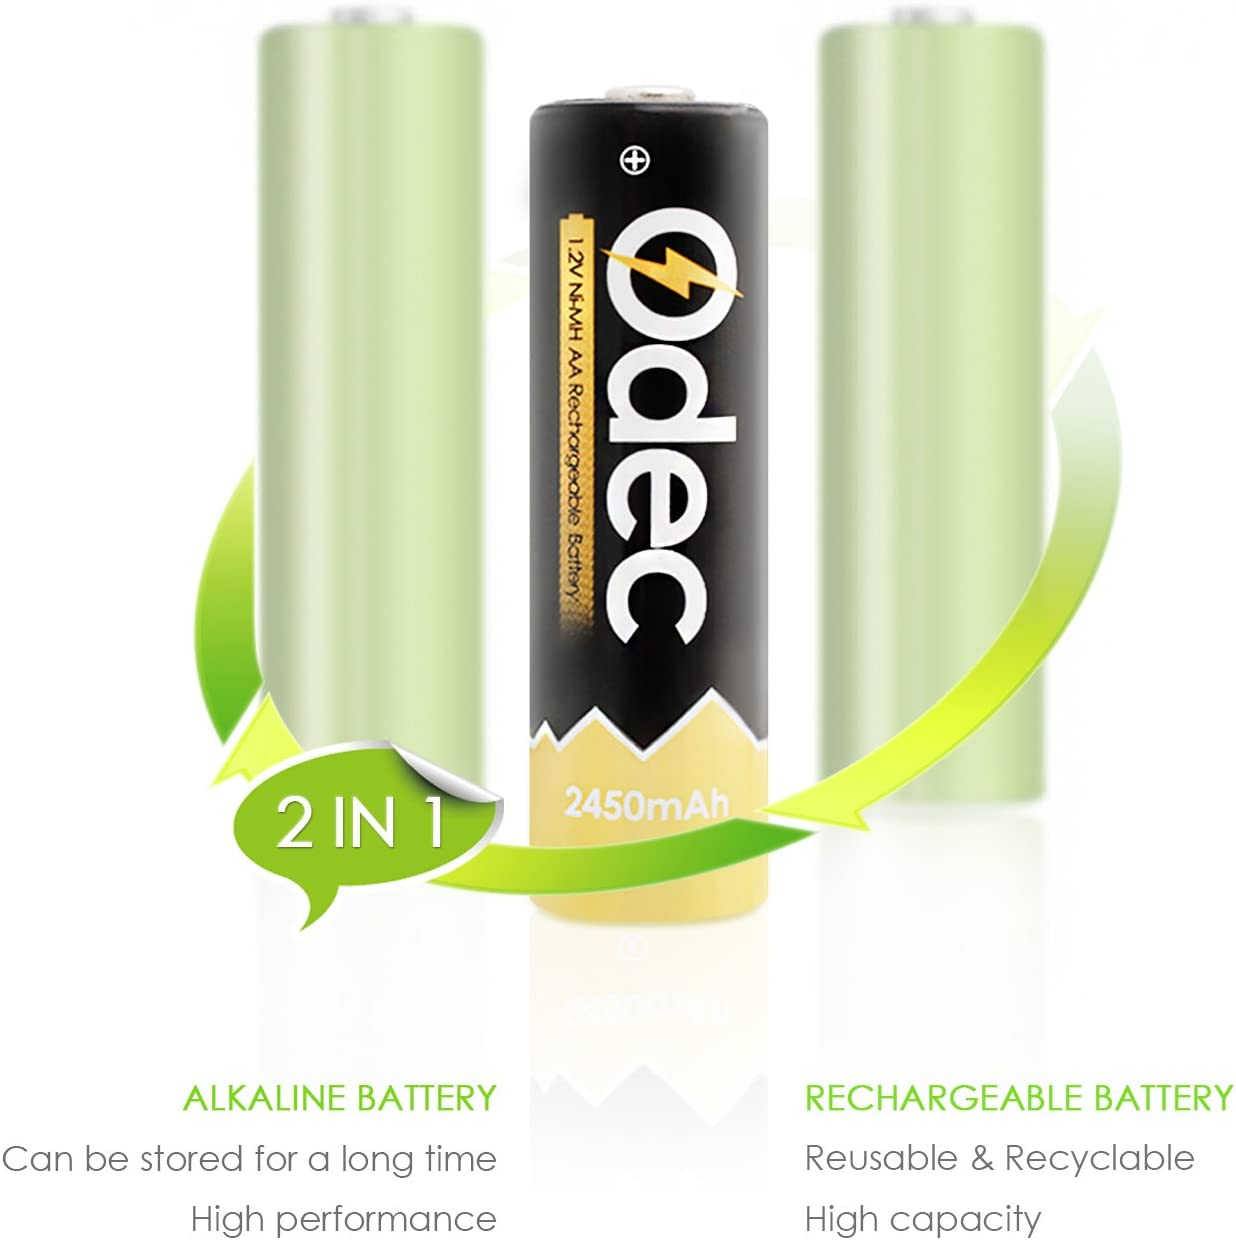 2450mAh Ni-MH Deep Cycle Battery Pack Odec AA Rechargeable Batteries 8-Pack